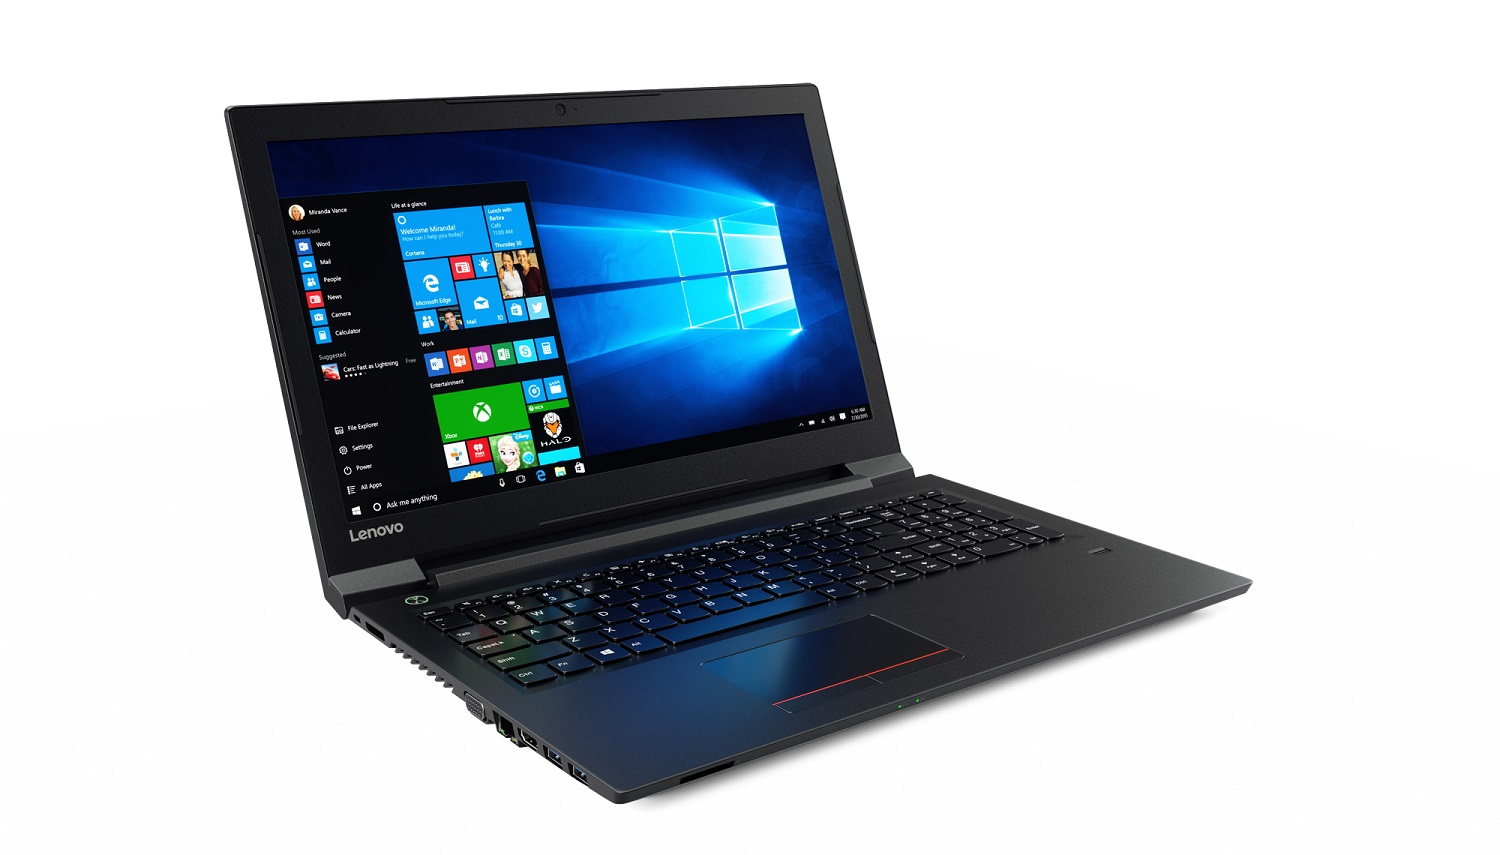 Lenovo NB 15.6'' V310-15ISK i3-6006U/4Gb/500Gb/Windows 10 Pro GR